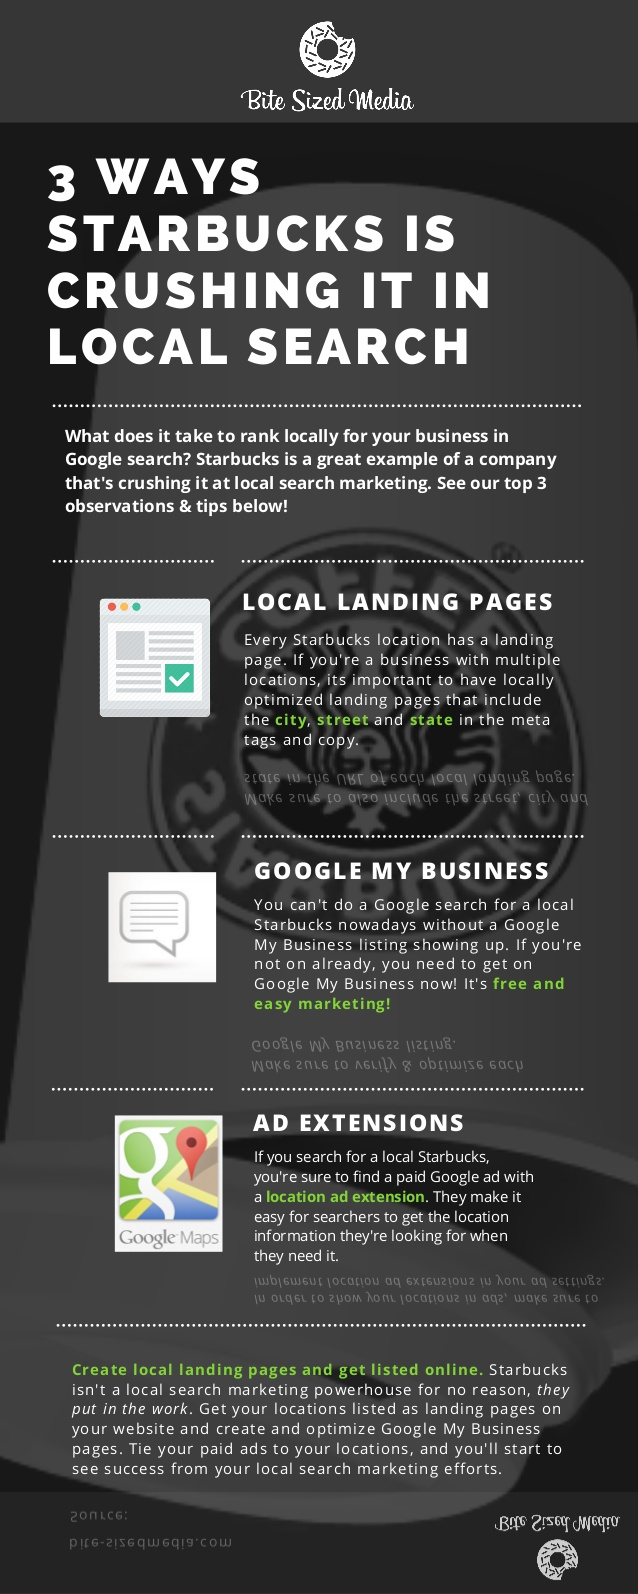 infographic-3-ways-starbucks-is-crushing-it-in-local-search-and-you-can-too-1-638